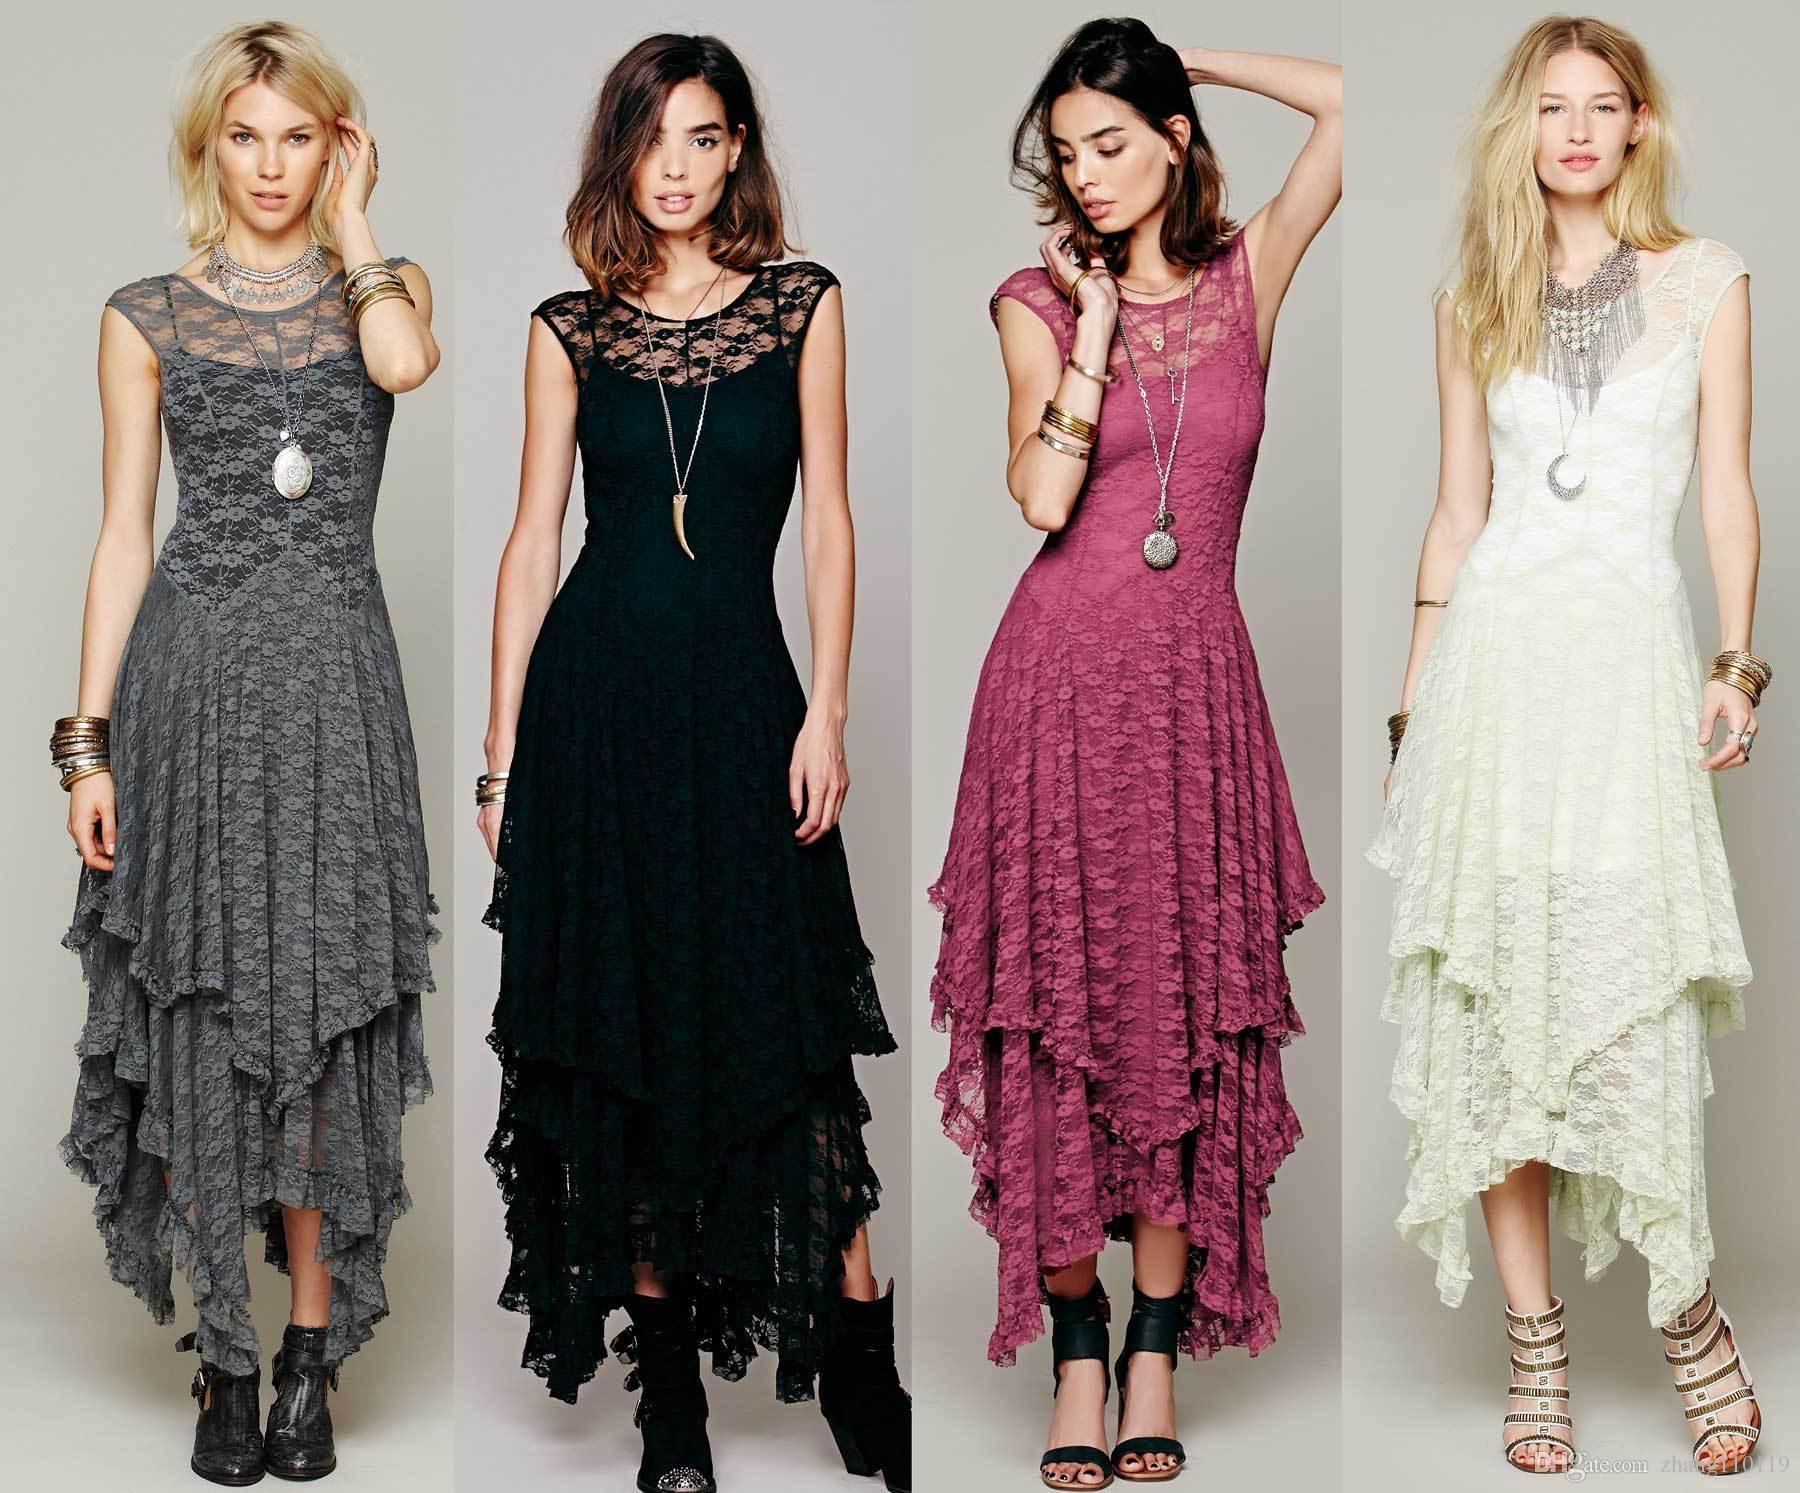 Get Stylish in Elegant Ladies Dresses to Go with Fashion!